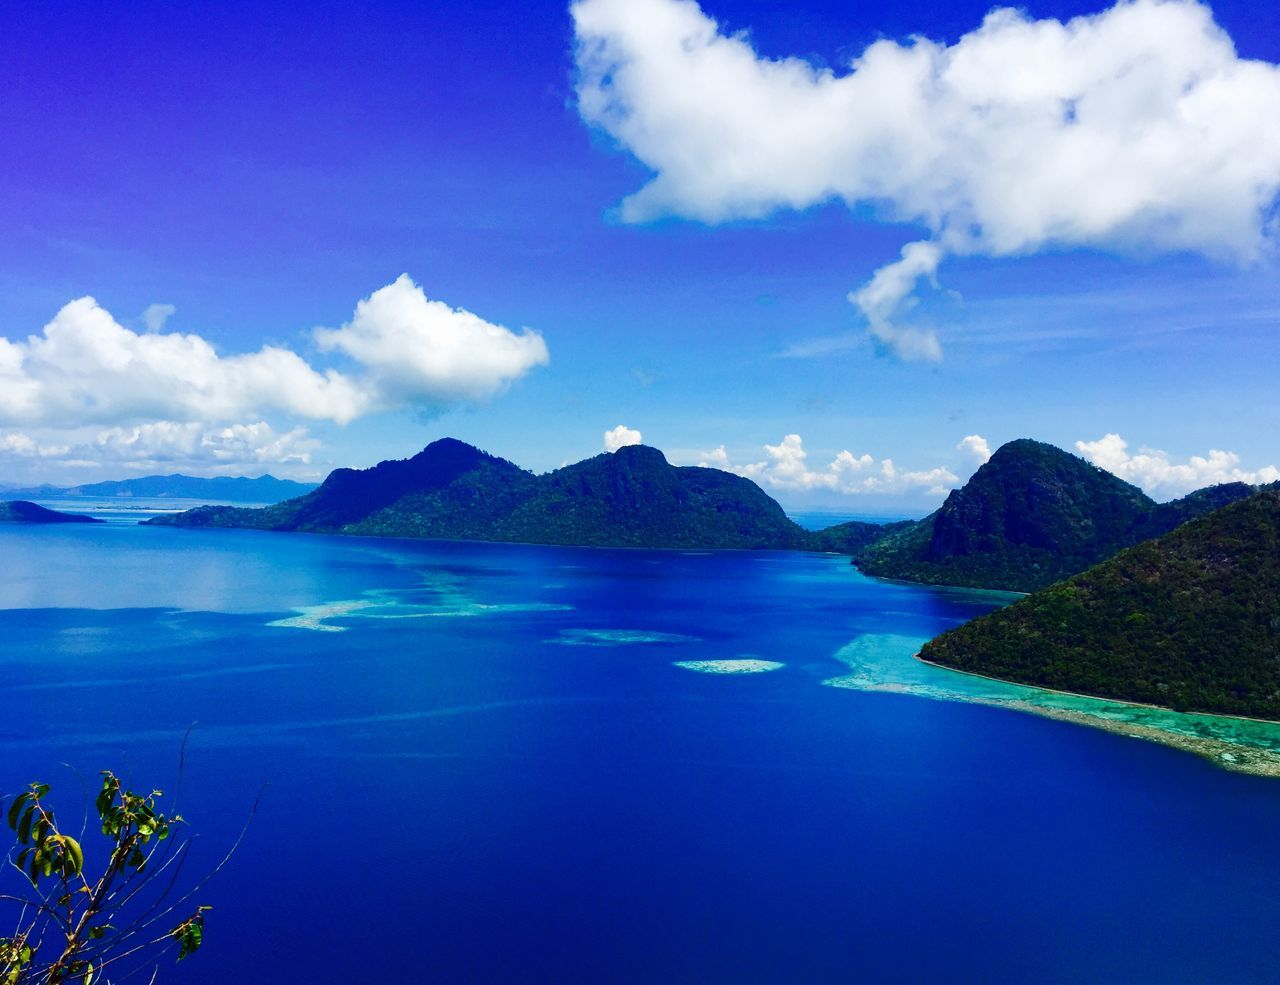 Scenic View Of Blue Sea And Mountains Against Cloudy Sky